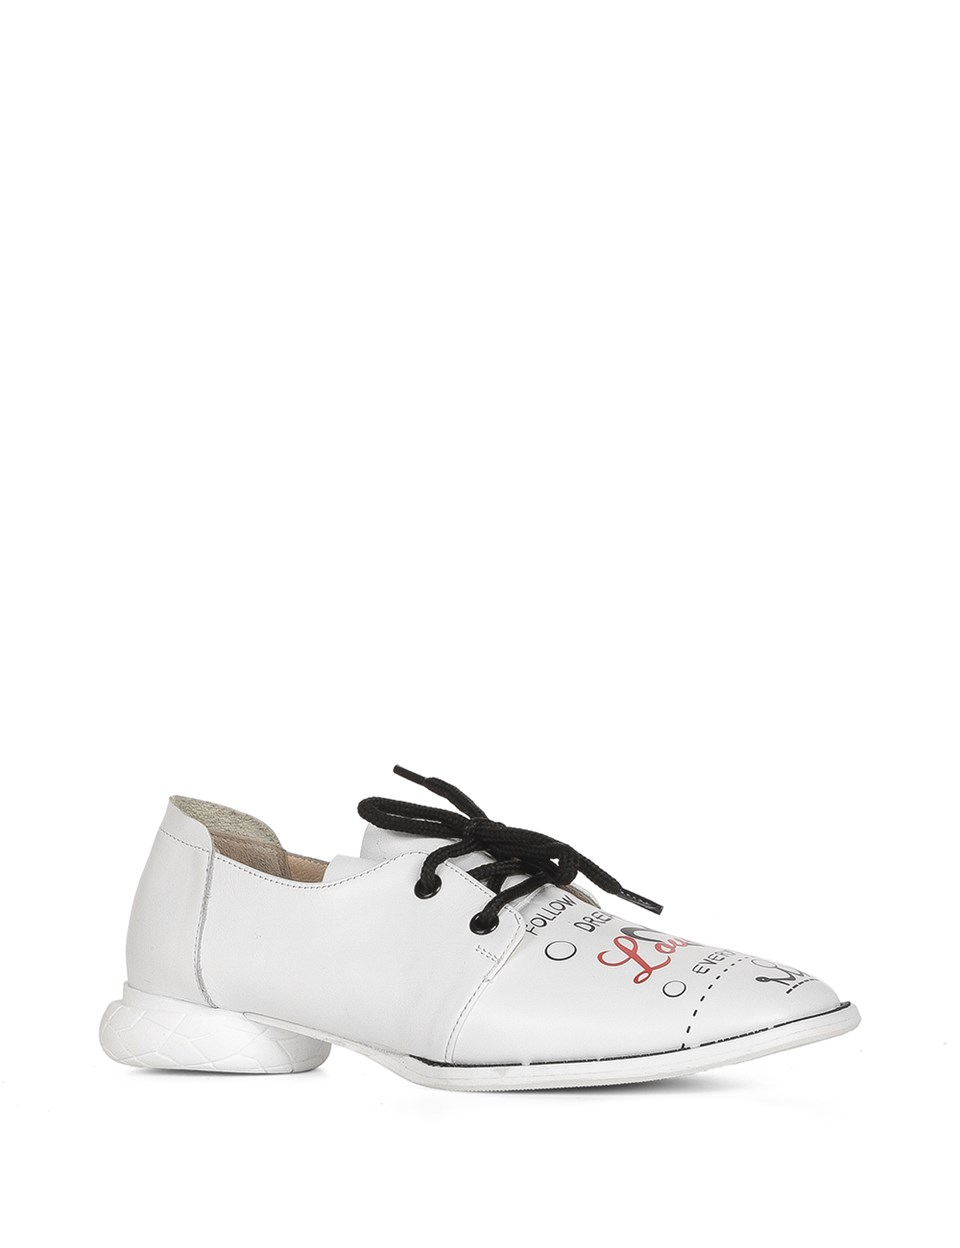 ILVi-Genuine Leather Handmade Pars Women's Oxford White Leather-Print Women Shoes 2020 Spring Summer (Made in turkey)